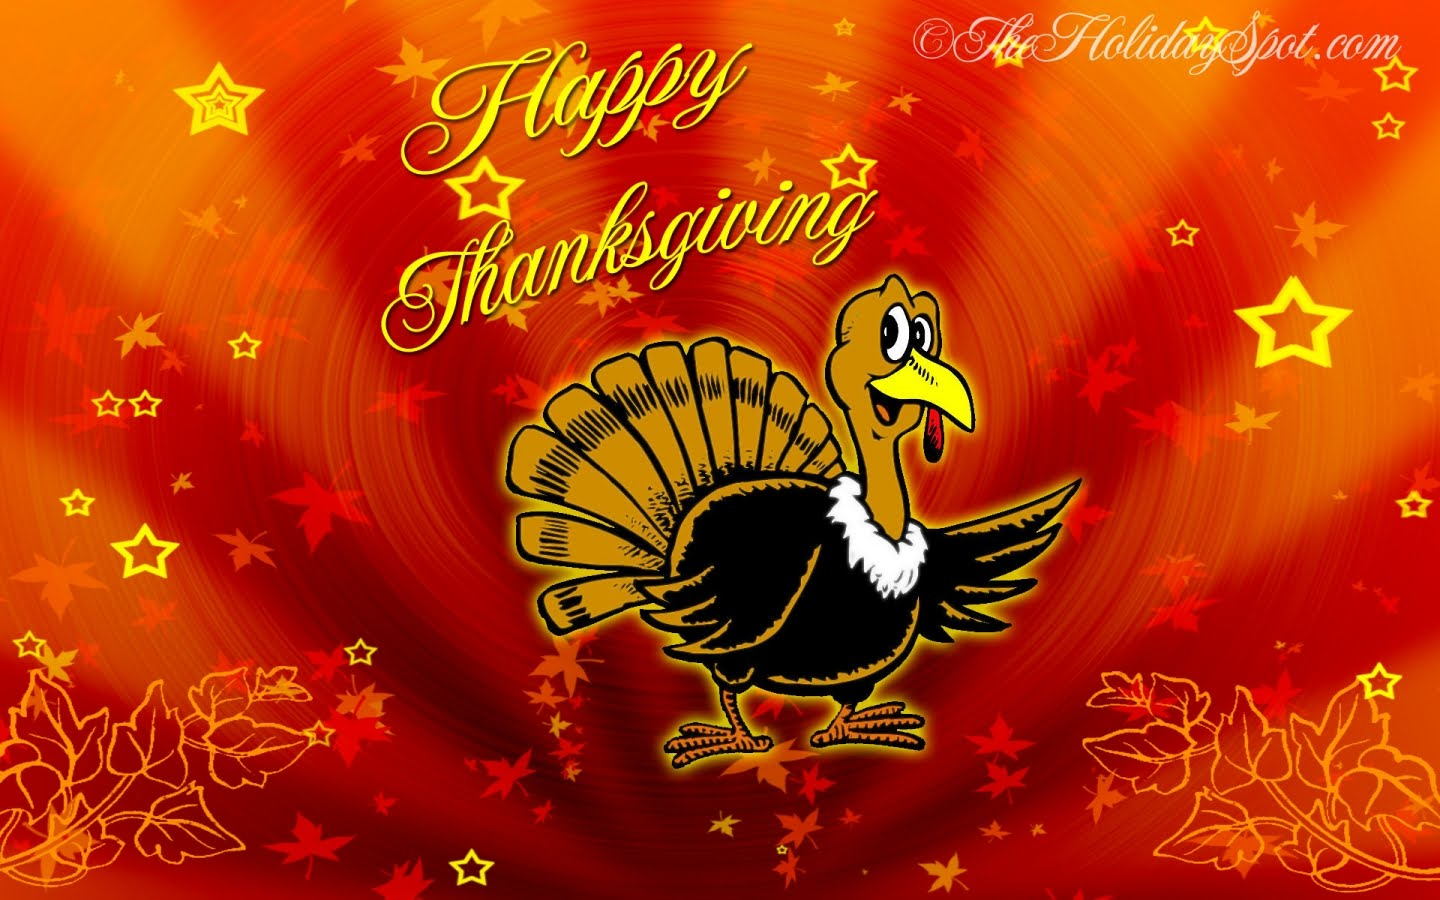 Southern orders november 2012 - Thanksgiving day wallpaper 3d ...